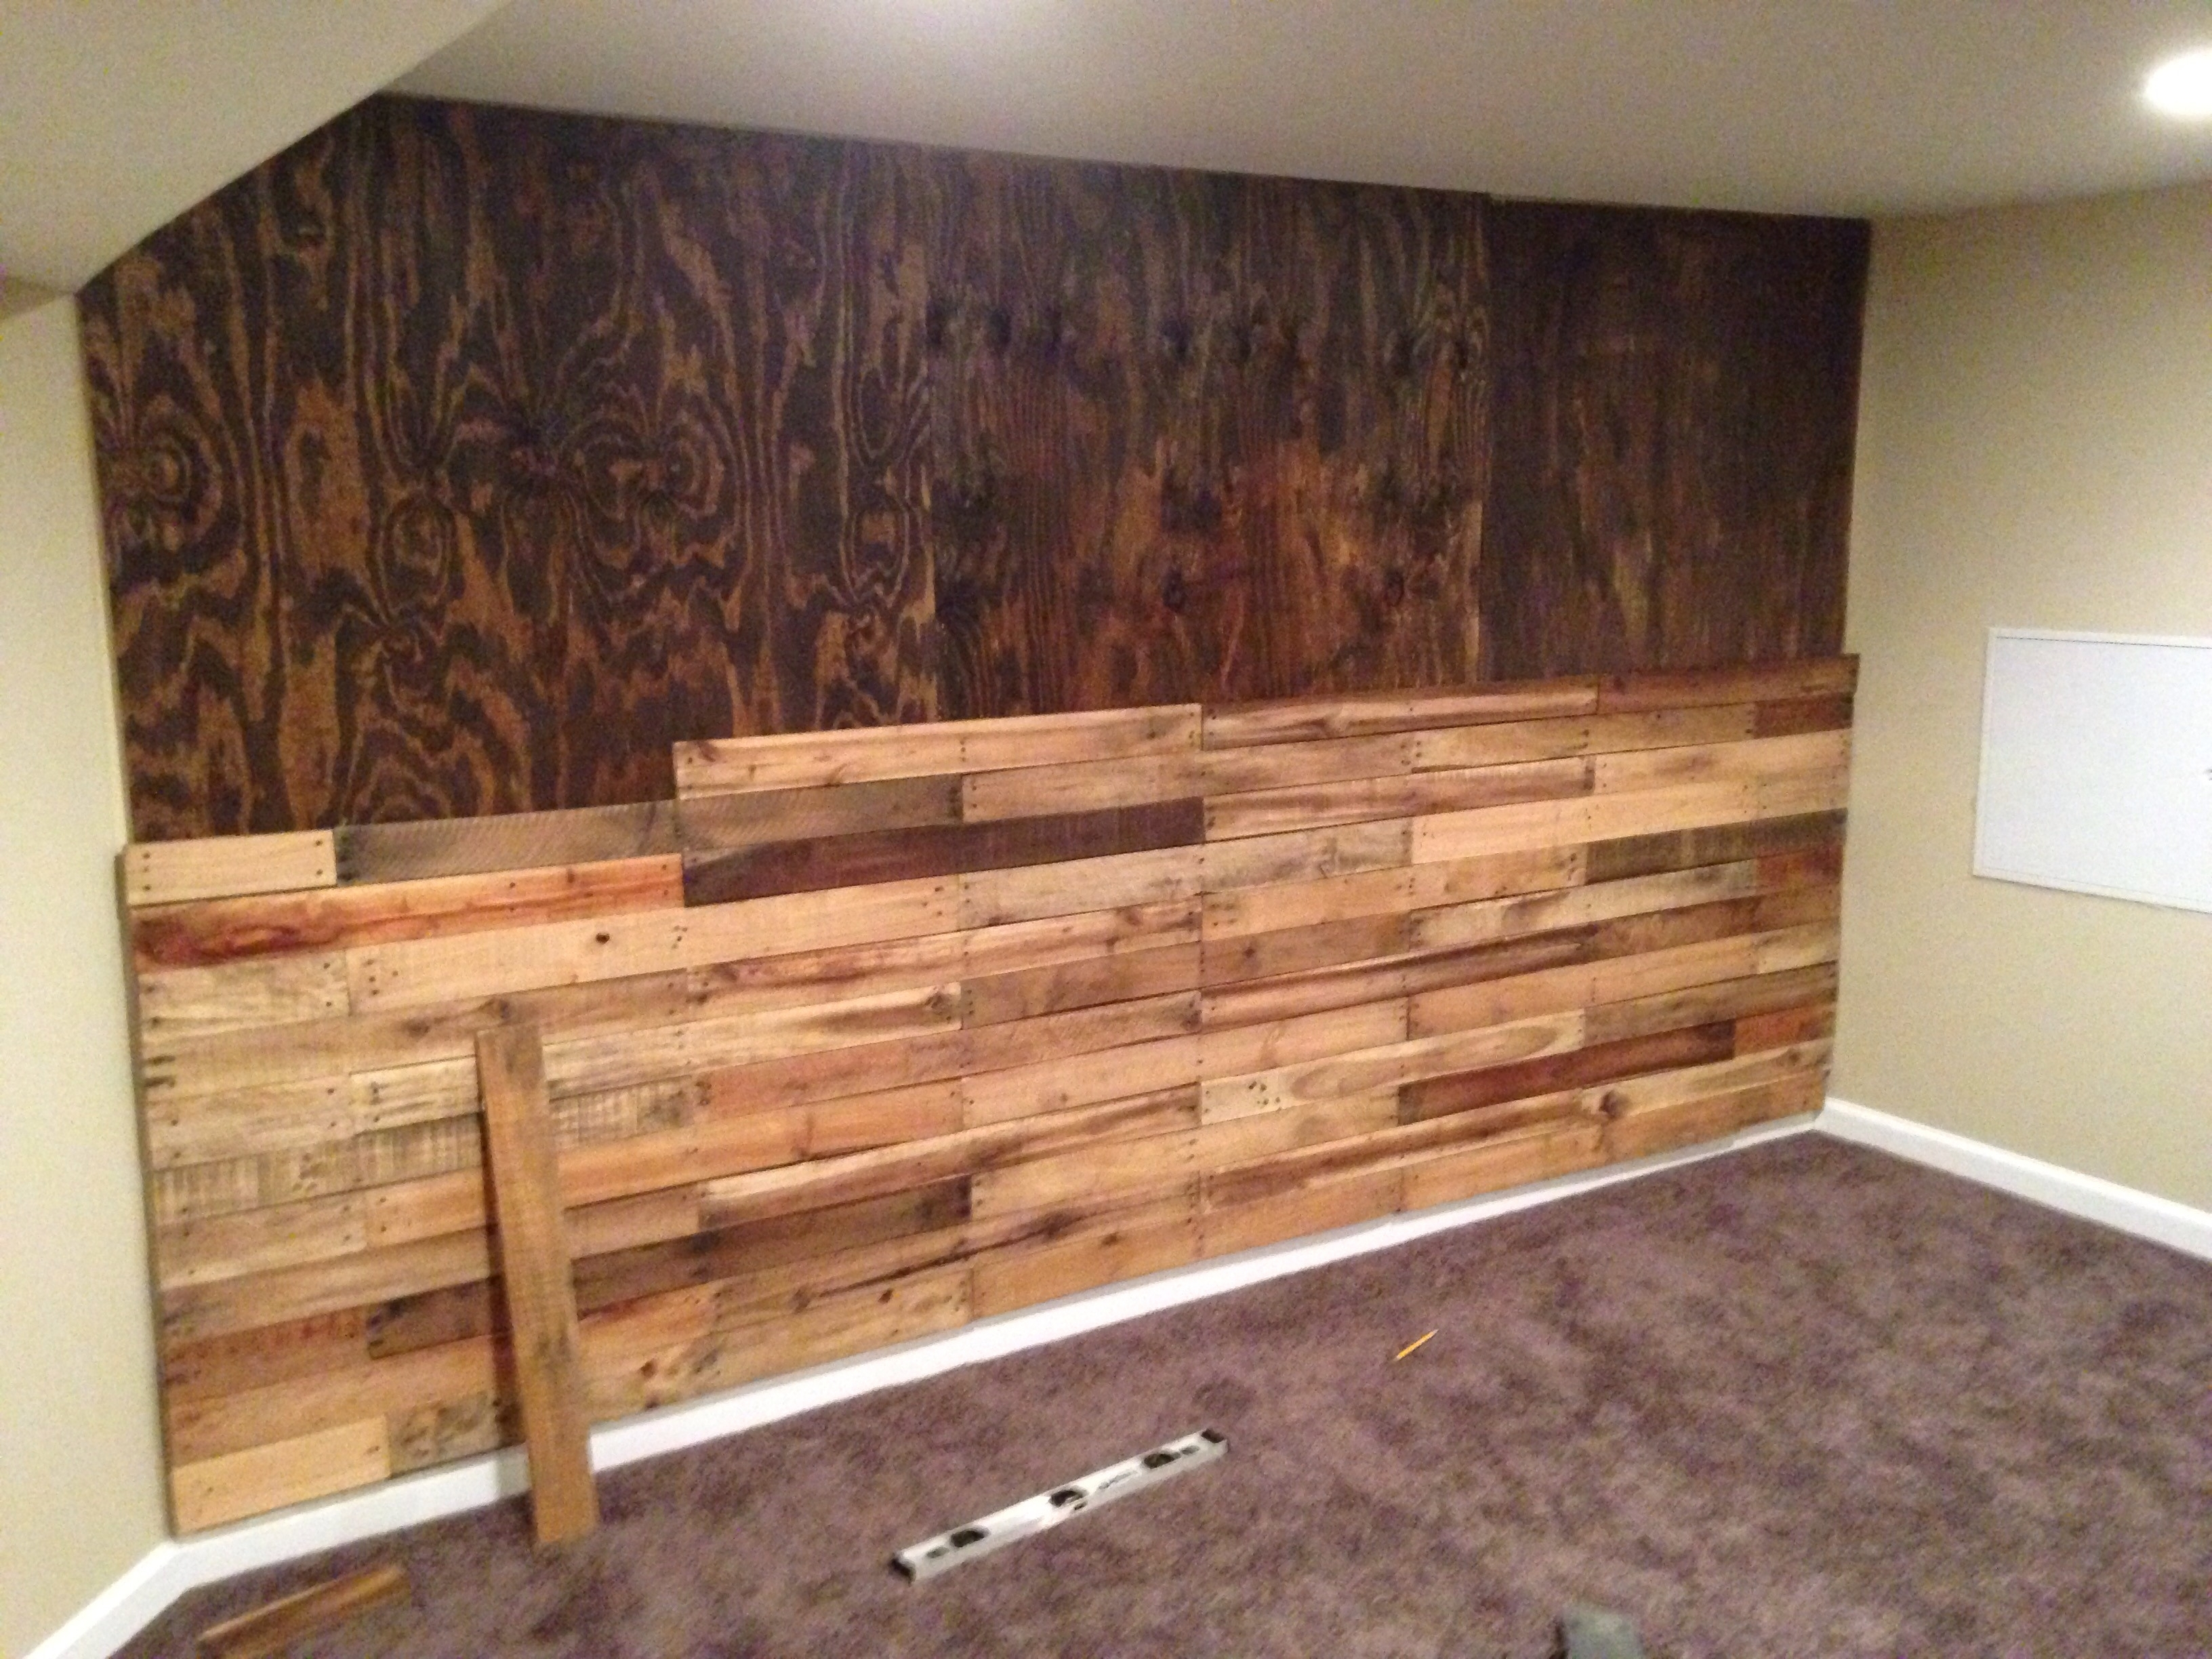 Pallet Accent Wall! - Album On Imgur regarding 2017 Wall Accents Made From Pallets